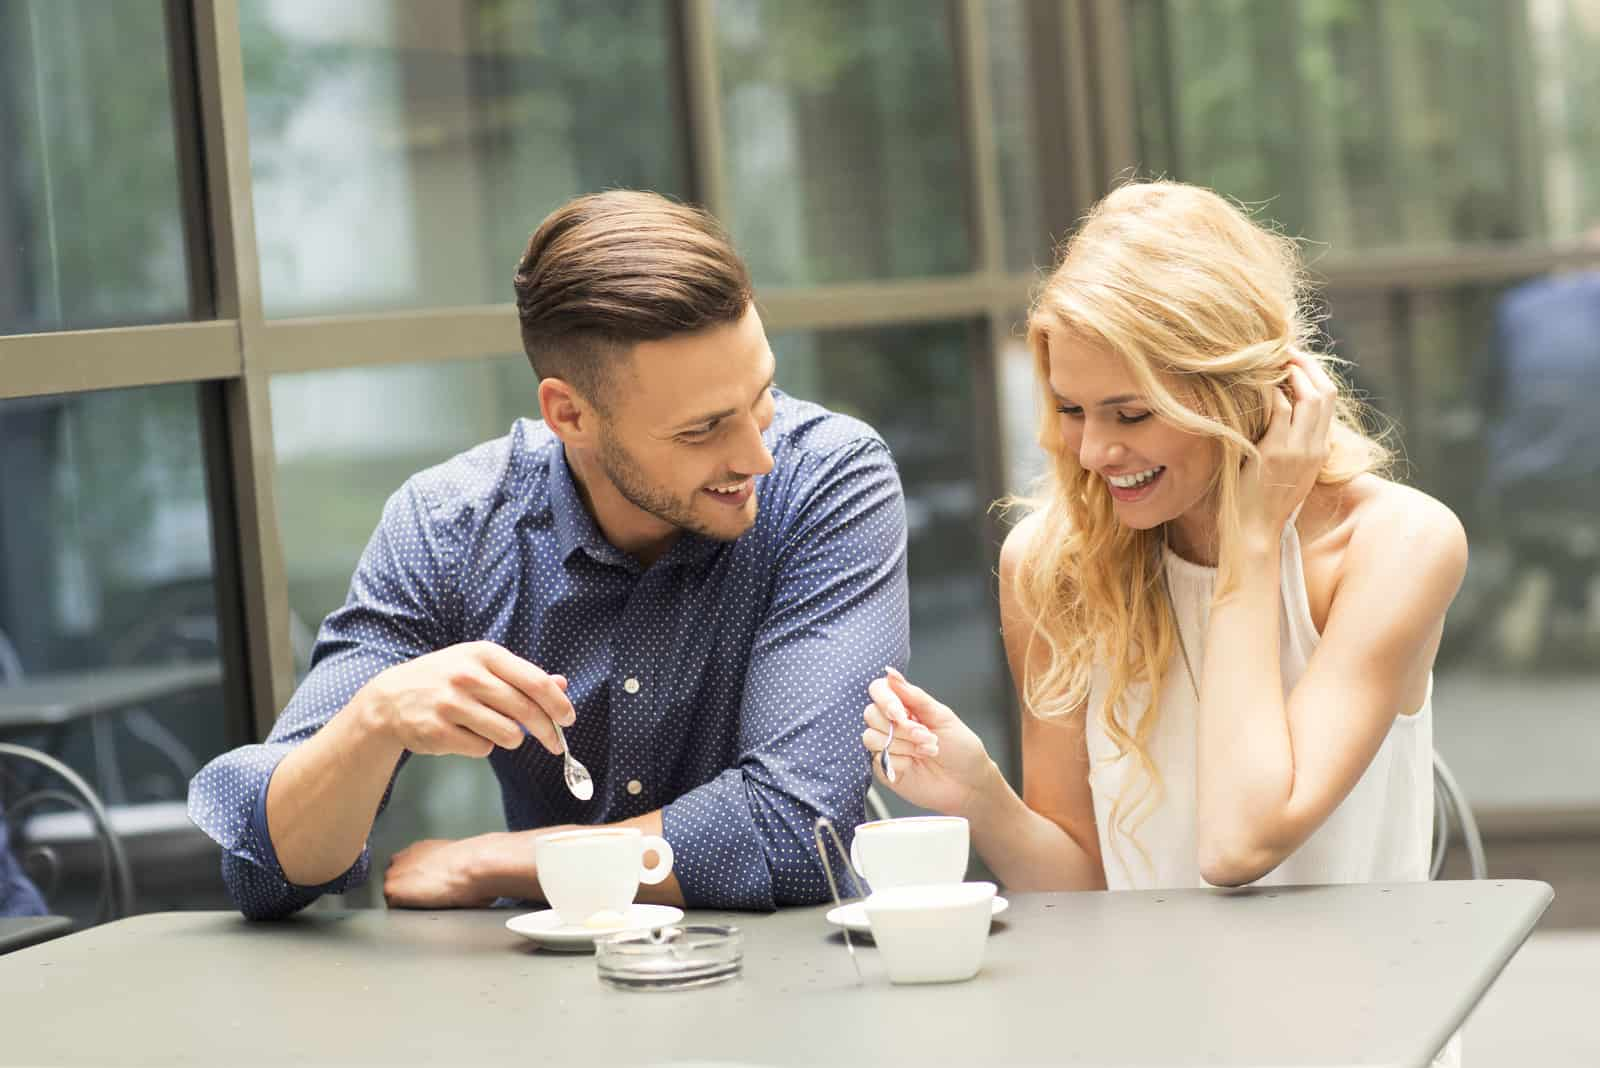 a man and a woman sit drinking coffee and talking